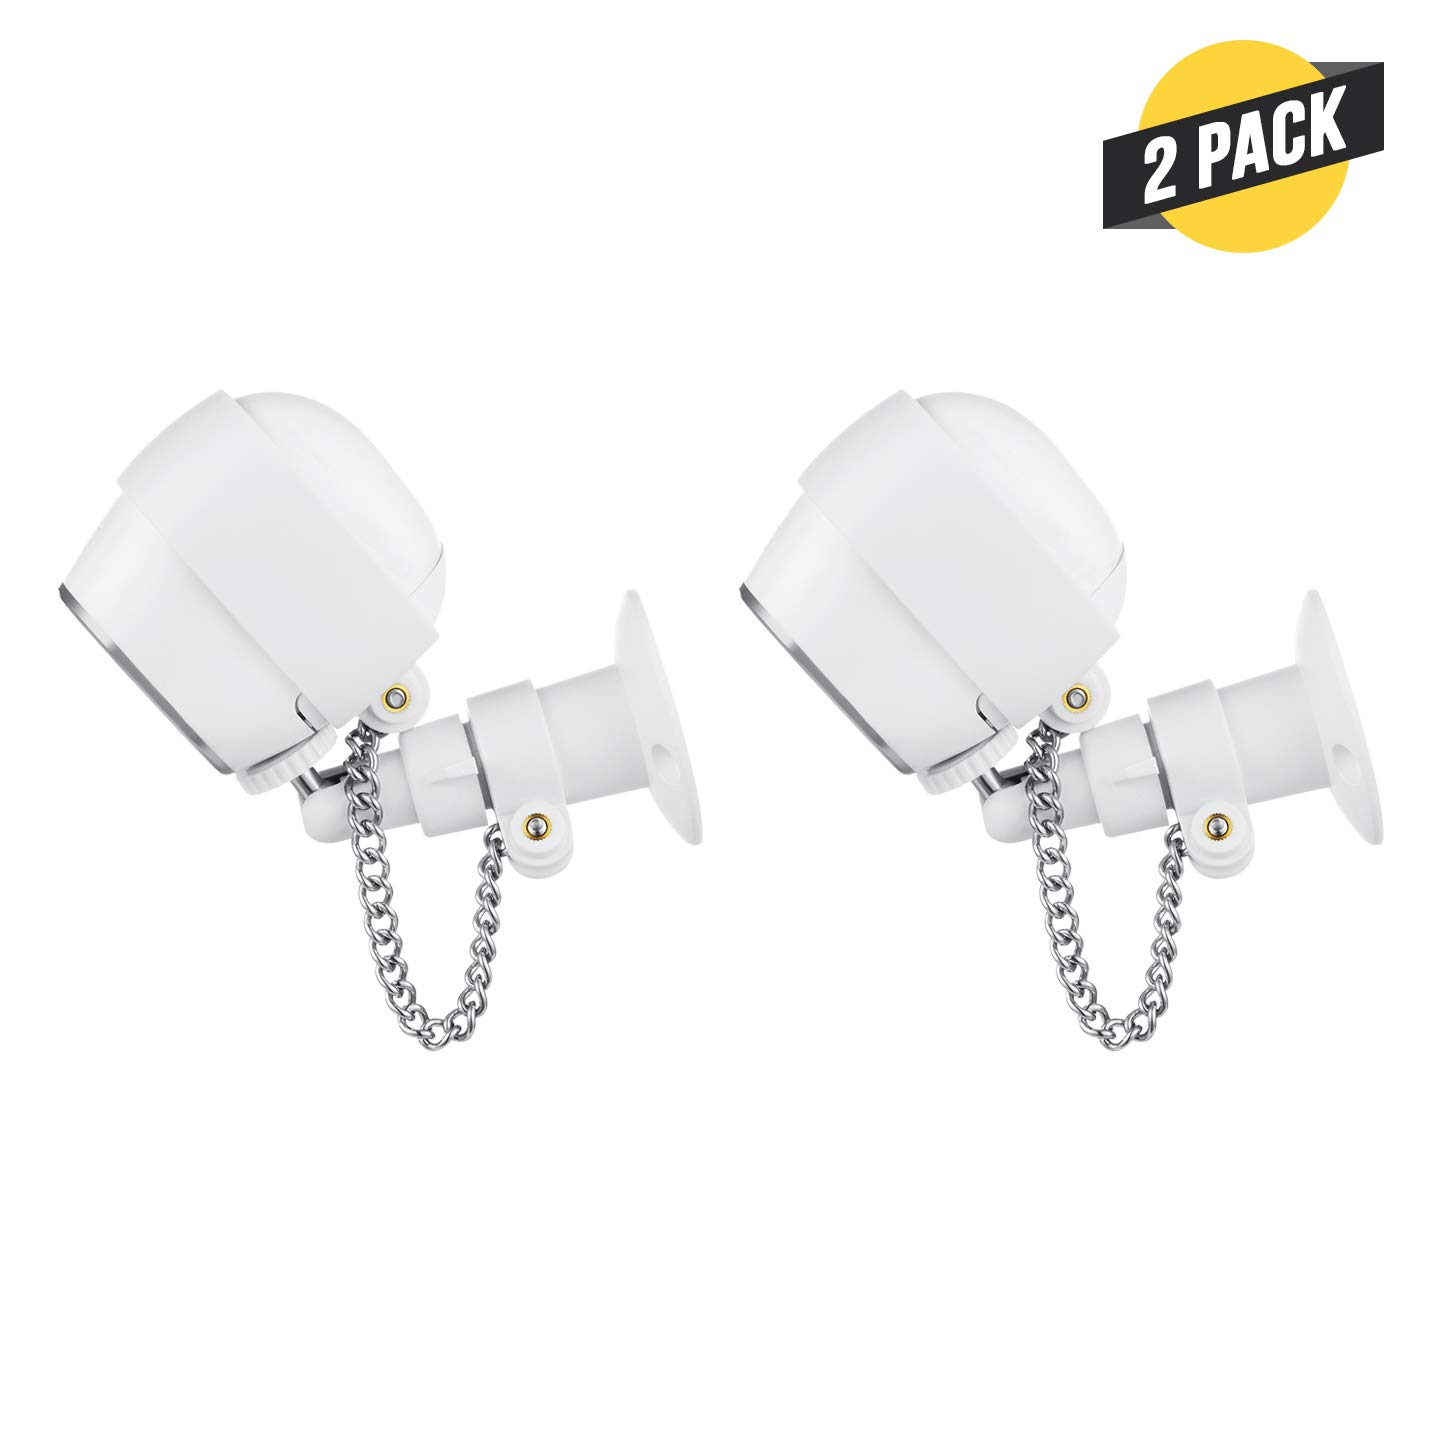 Wasserstein Anti-Theft Security Chain Compatible with Arlo HD - Extra Security for Your Arlo Camera (2 Pack, White)